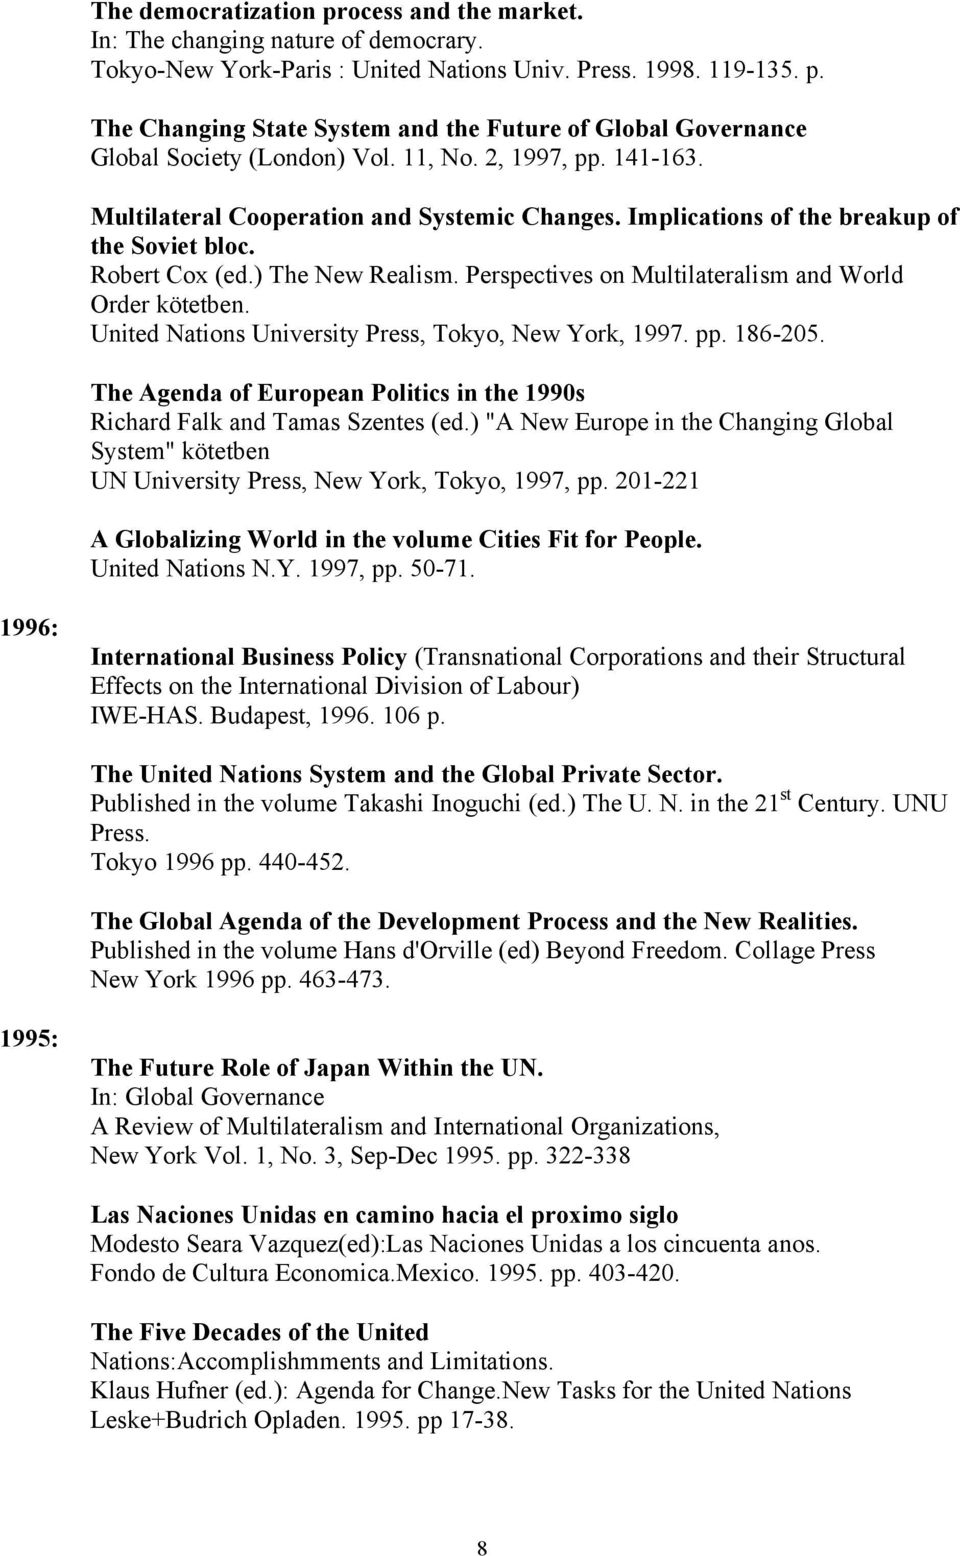 Perspectives on Multilateralism and World Order kötetben. United Nations University Press, Tokyo, New York, 1997. pp. 186-205.